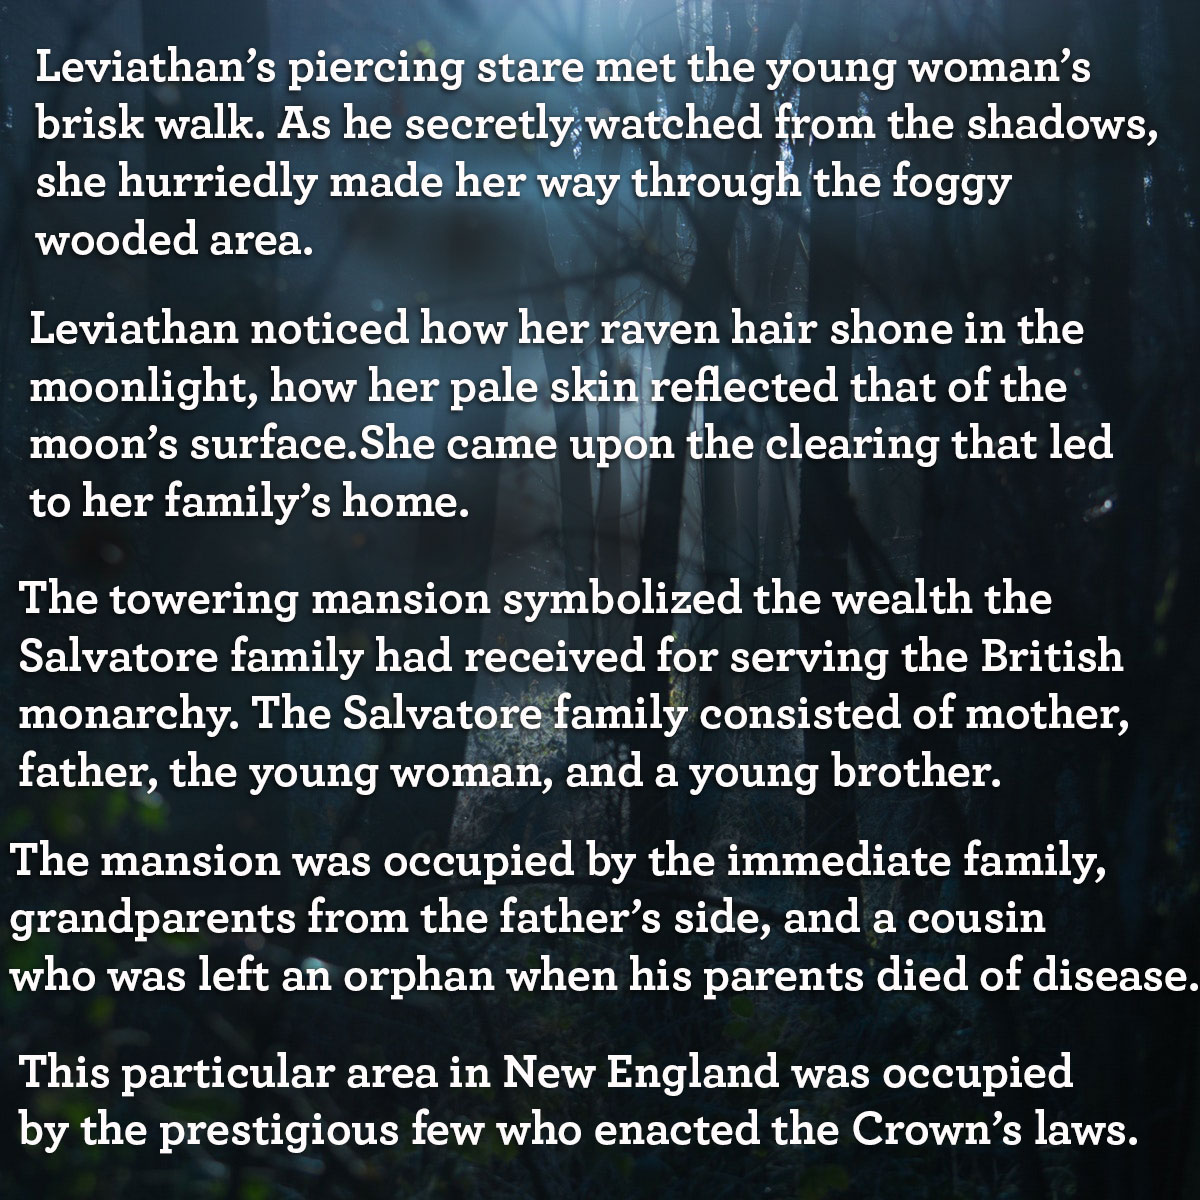 The Queen of Leviathan